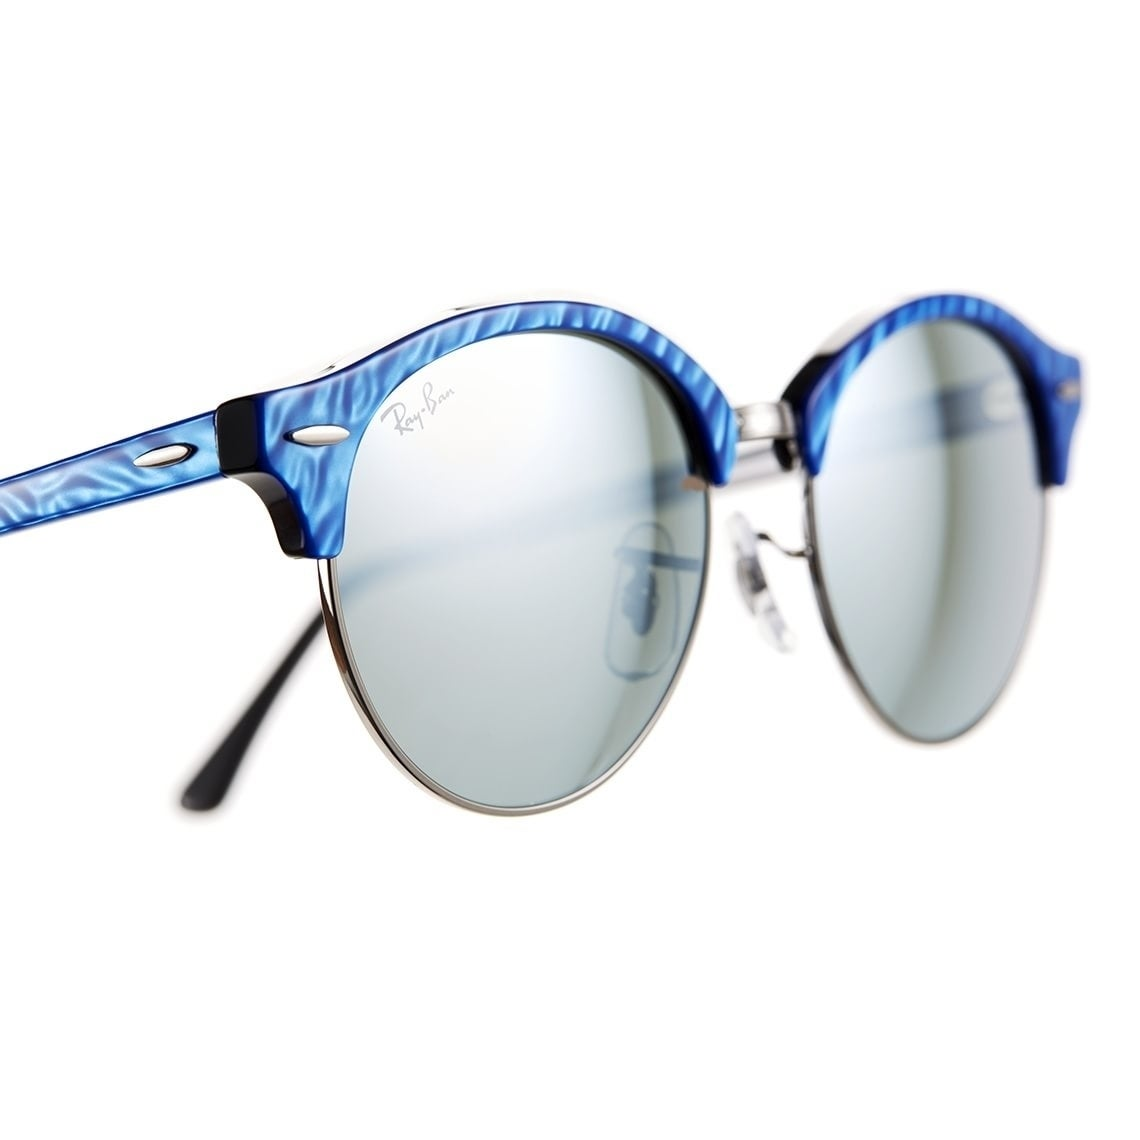 9b7c1a8cc40f2 Shop Ray-Ban Unisex RB4246 Clubround Classic Blue Frame Silver Flash 51mm  Lens Sunglasses - Free Shipping Today - Overstock - 17754408